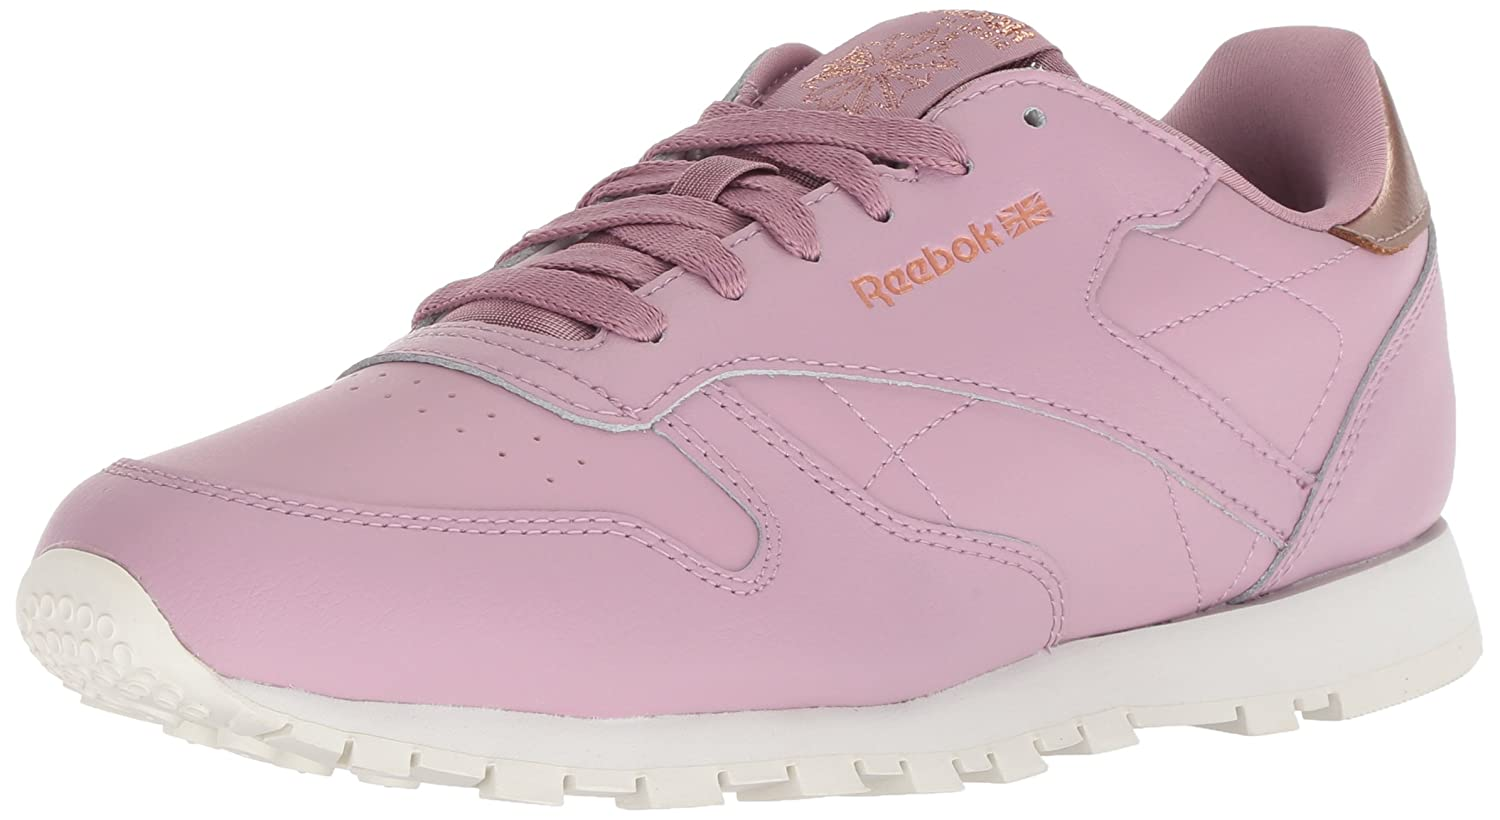 5b71f14c Reebok Baby Classic Leather Sneaker, rm-Infused Lilac/Chalk, 7.5 M US  Toddler